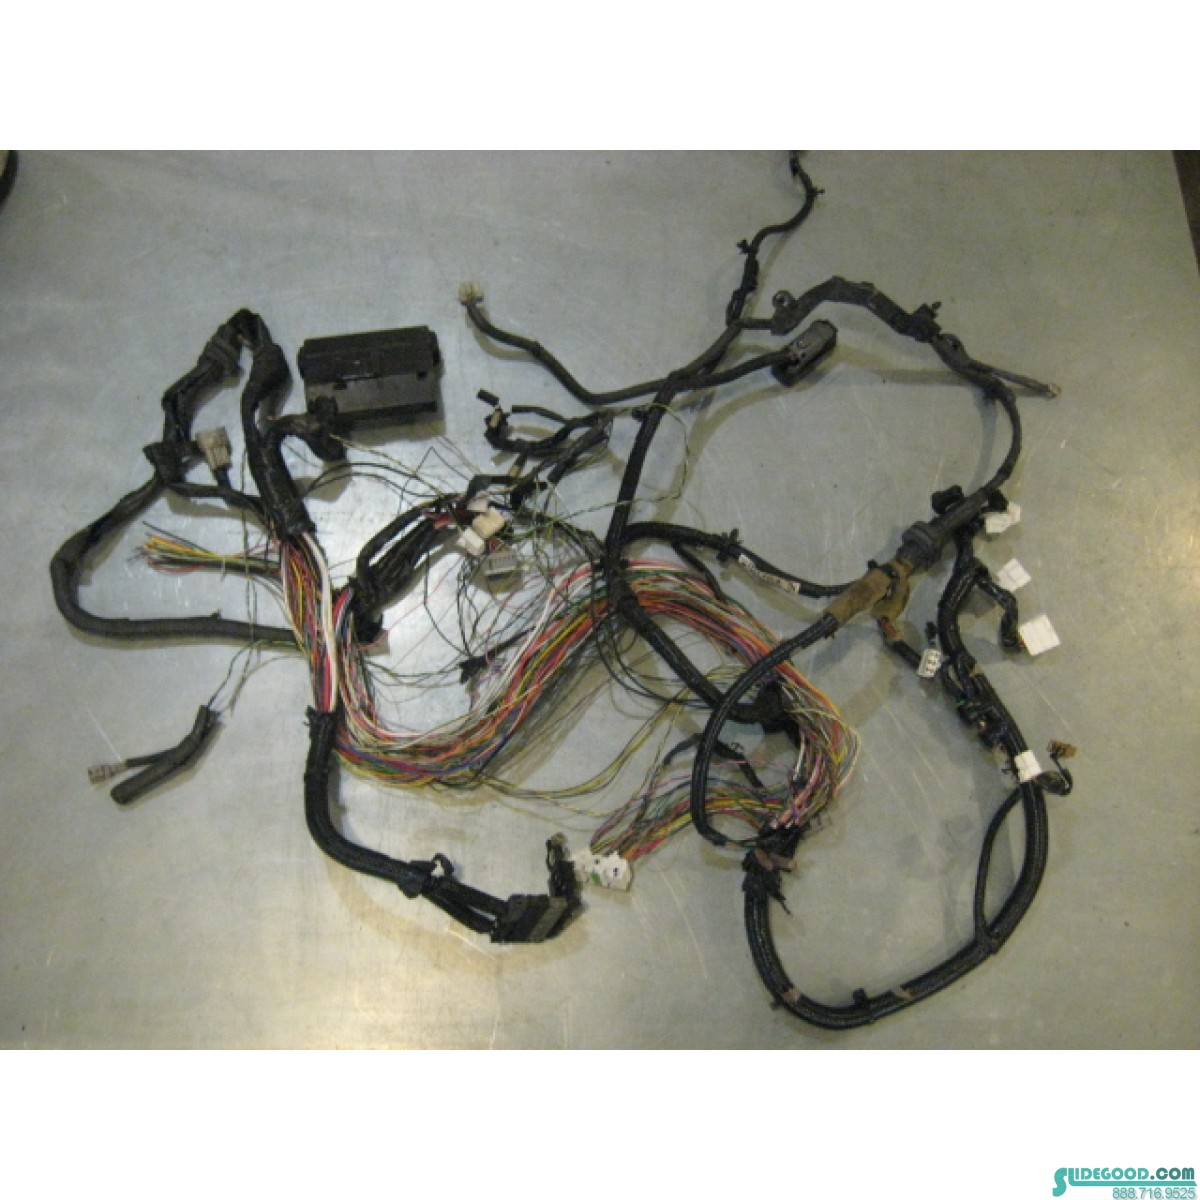 08 Nissan 350z At Engine Bay Wire Harness Parts 24012 Ev00b R20138 Wiring